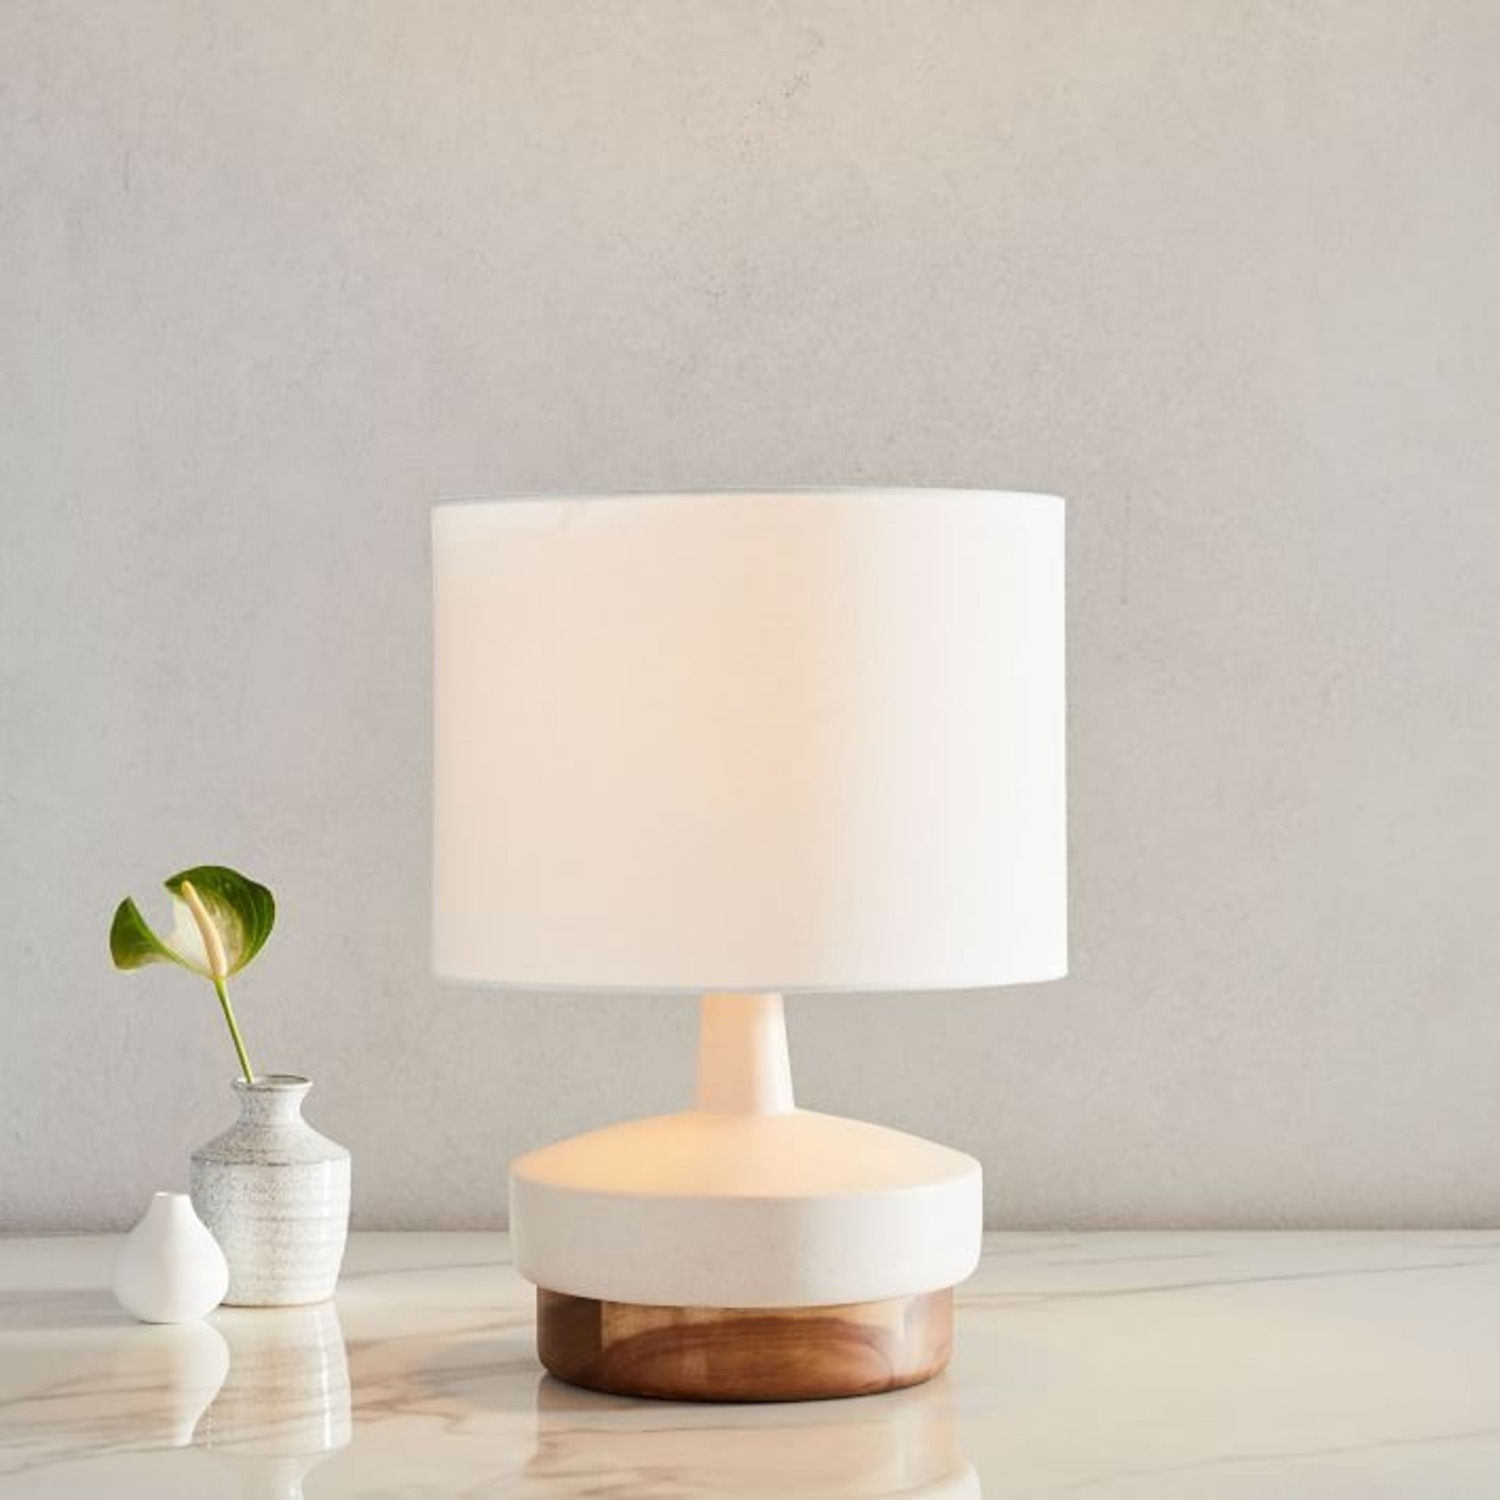 West Elm Wood + Ceramic Table Lamp, Small - image-1